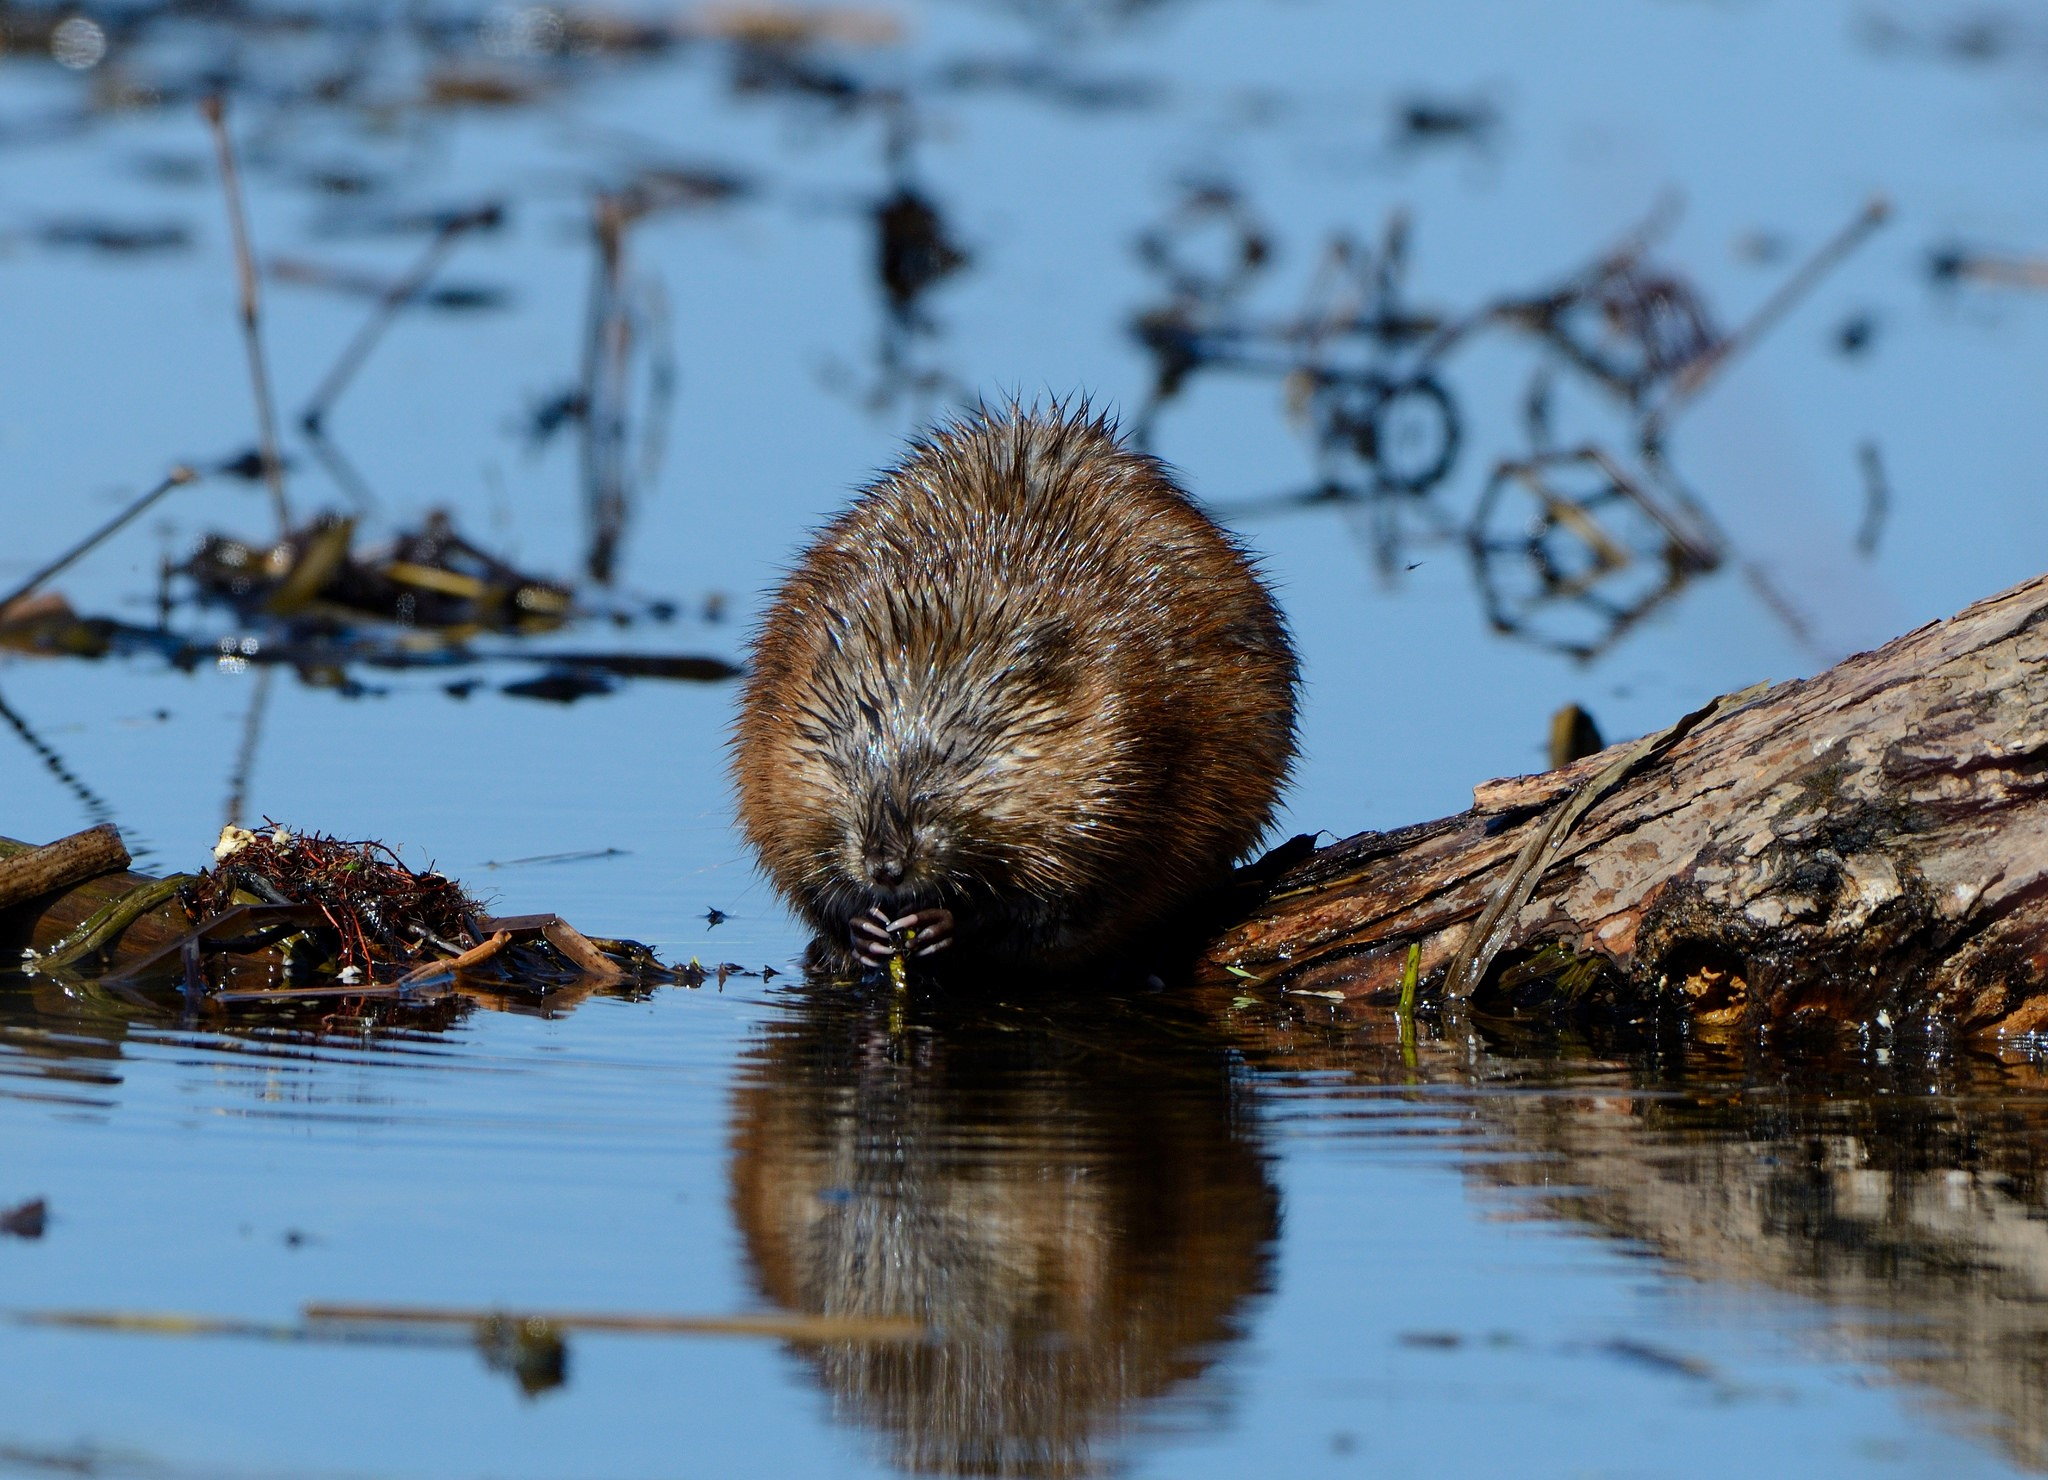 A muskrat happily eats a plant snack. Credit: Dave Inman